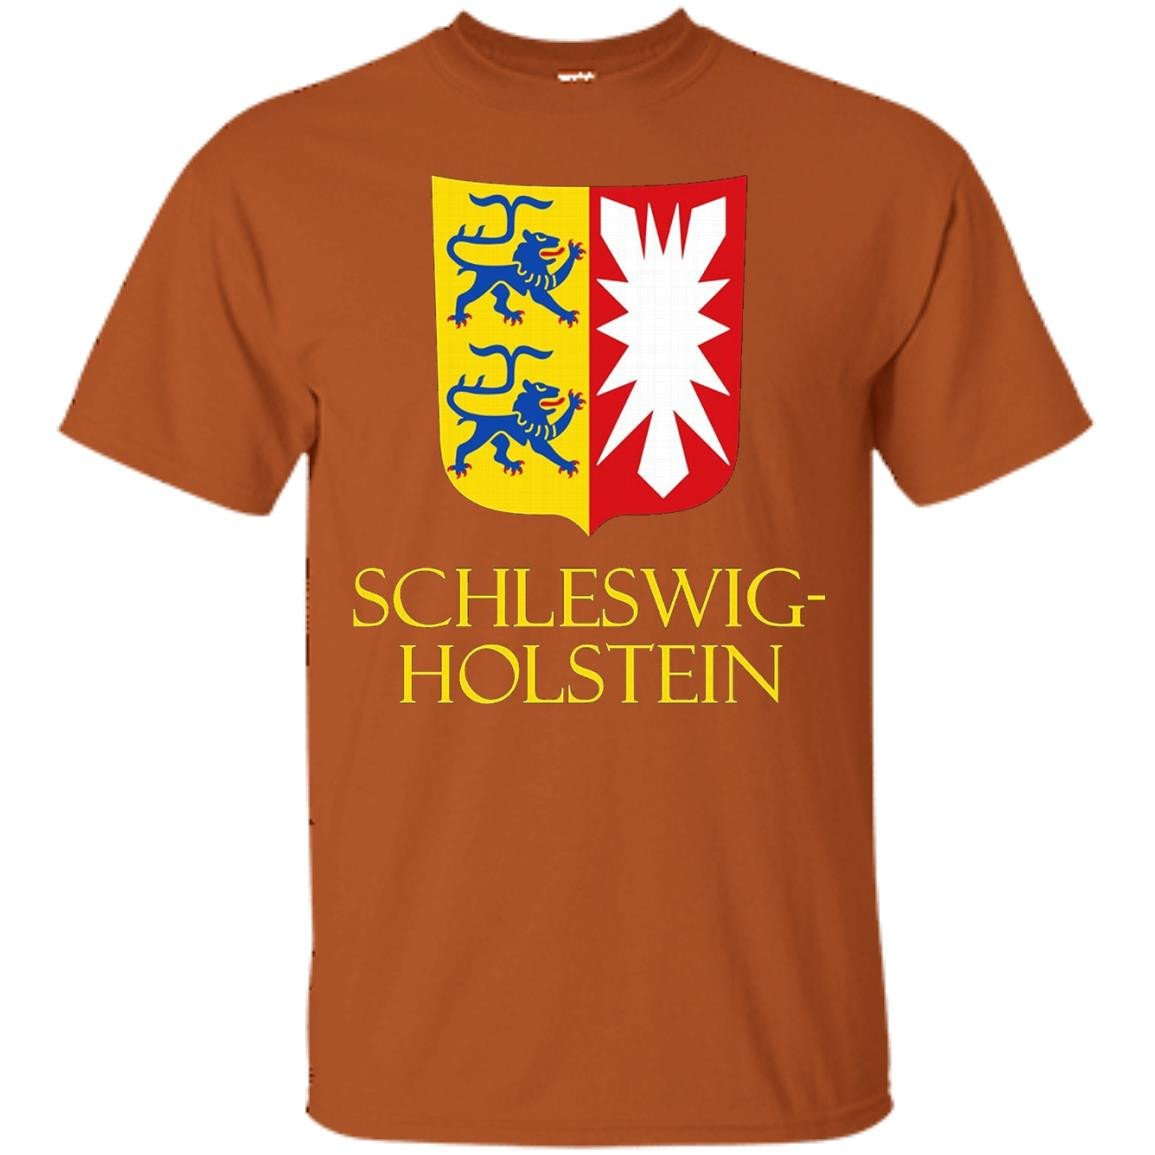 Schleswig-Holstein, Germany - Coat of Arms - T-Shirt